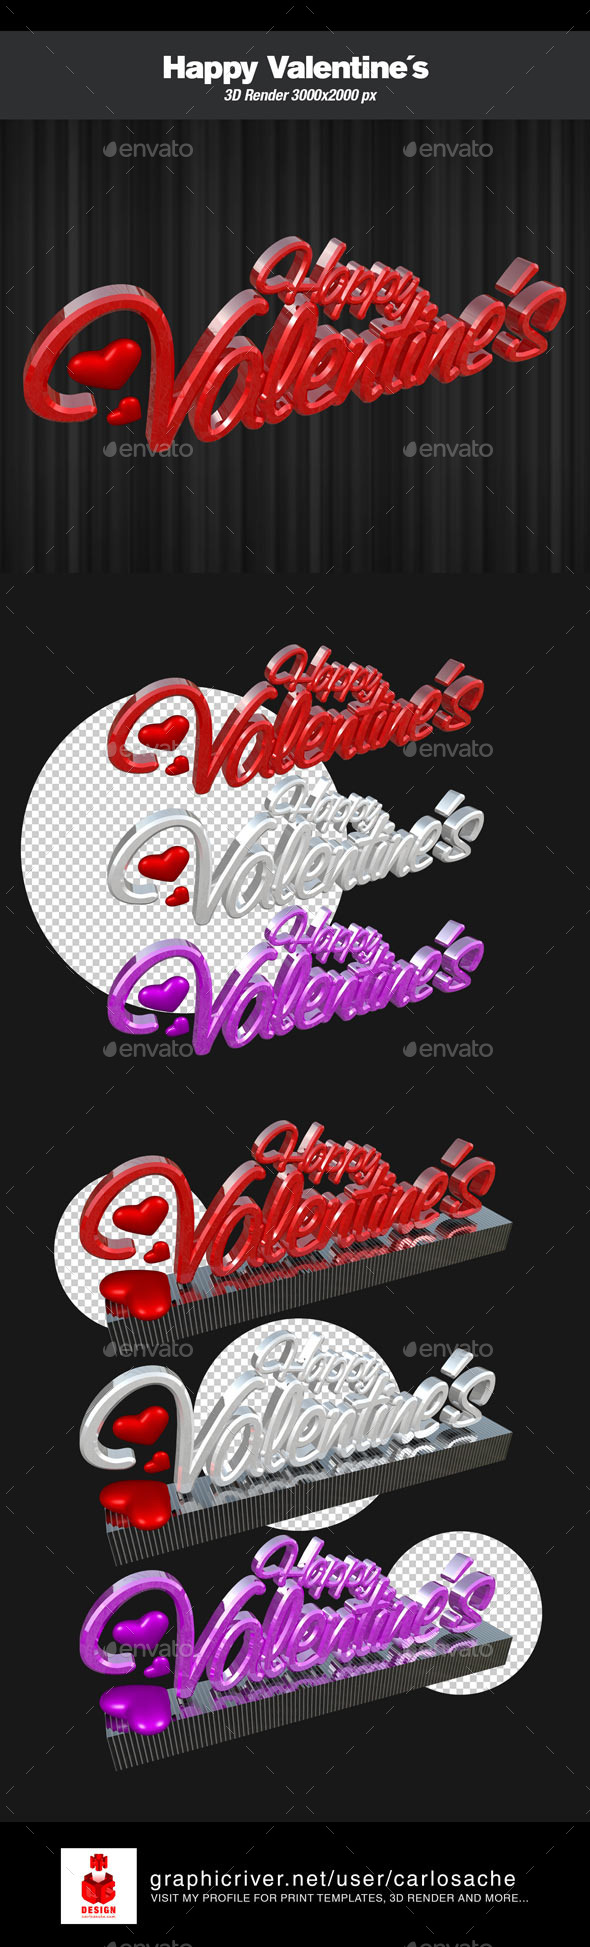 Happy Valentine´s – 3D Render Text